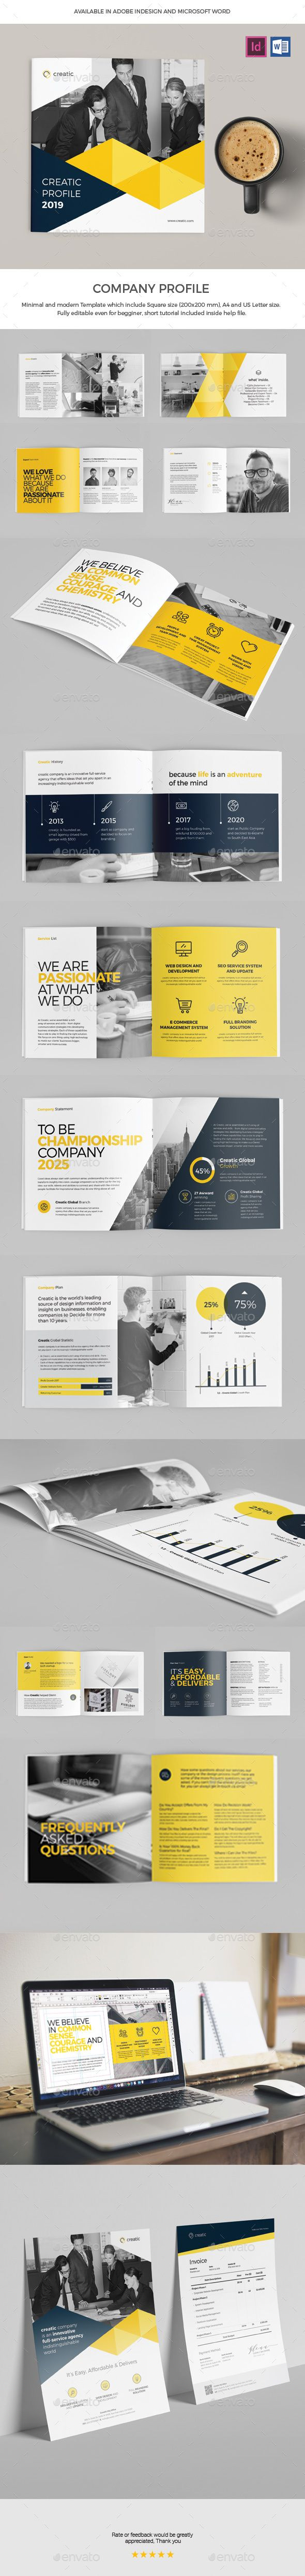 Company Brochure Template InDesign INDD - 26 Pages